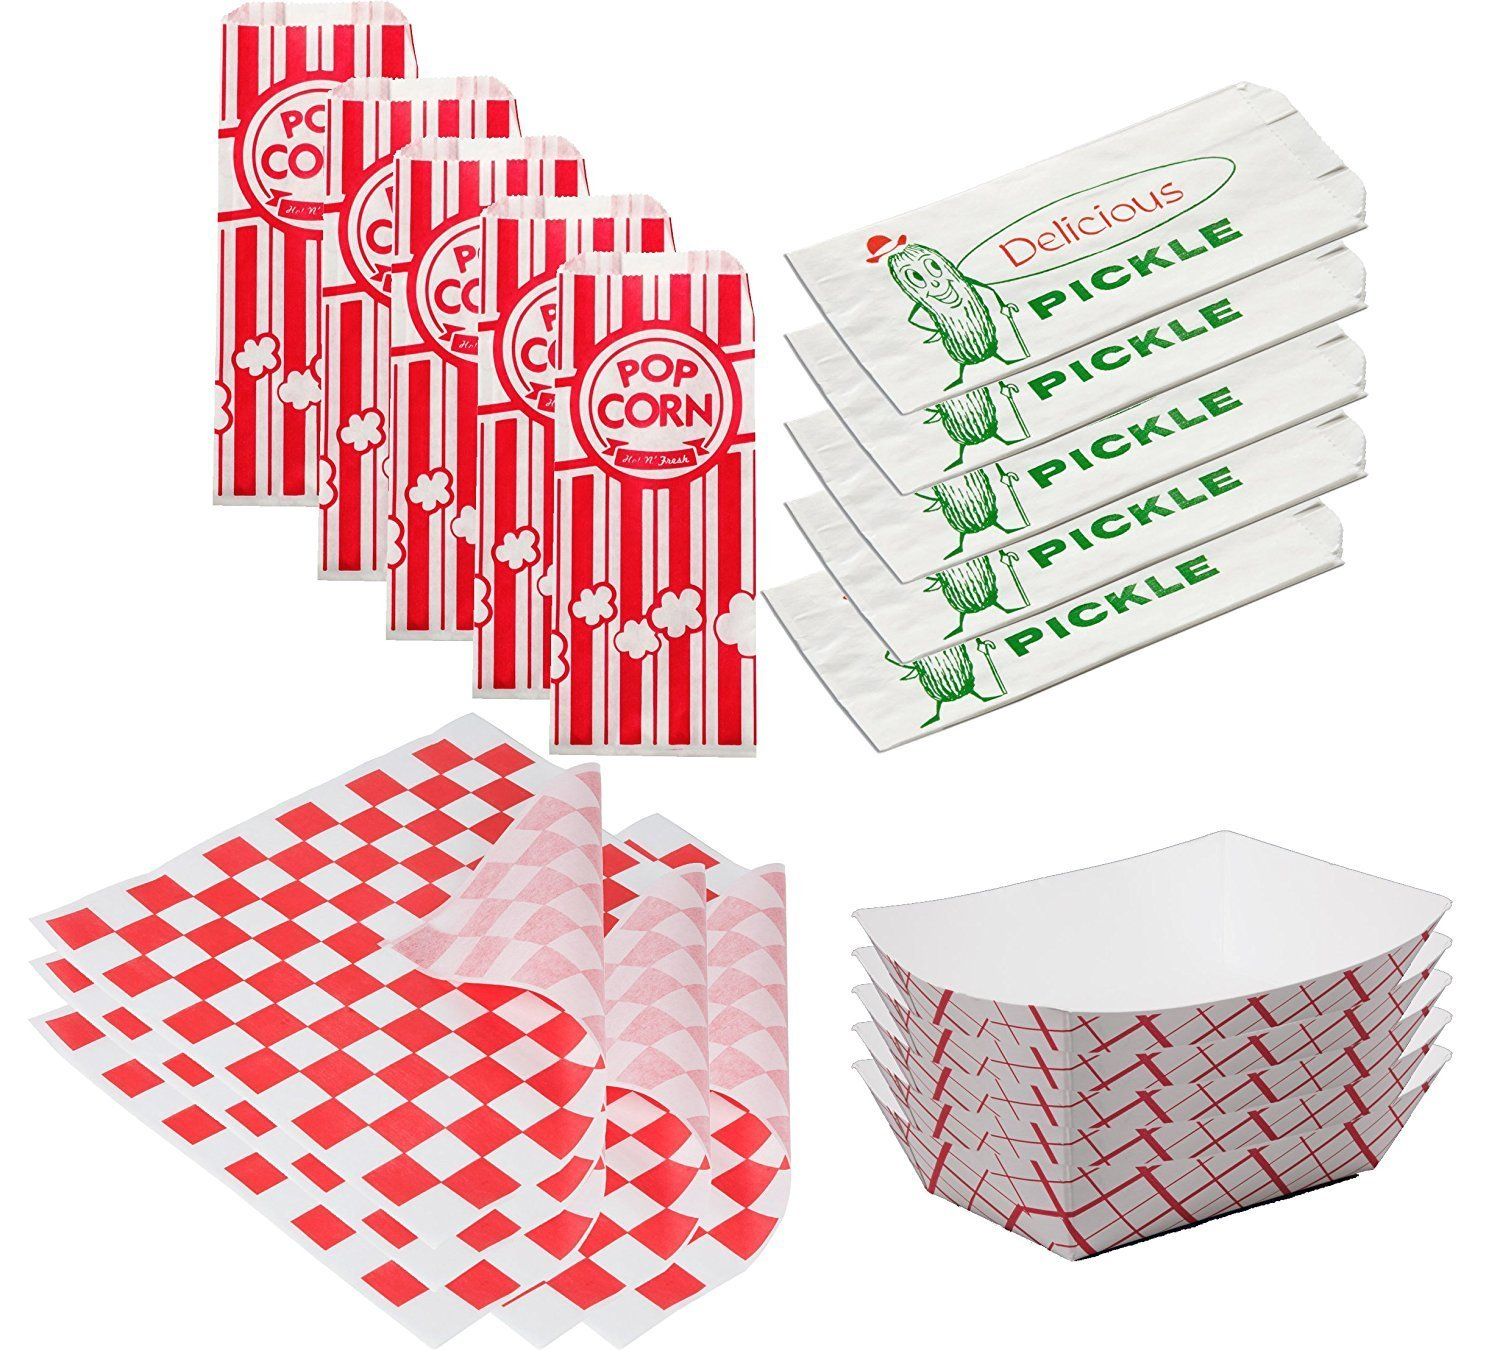 Popcorn Bags 50 Paper Food Tray & 50 Sandwich Wrap Paper Red Check + Pickle Bags Printed... by